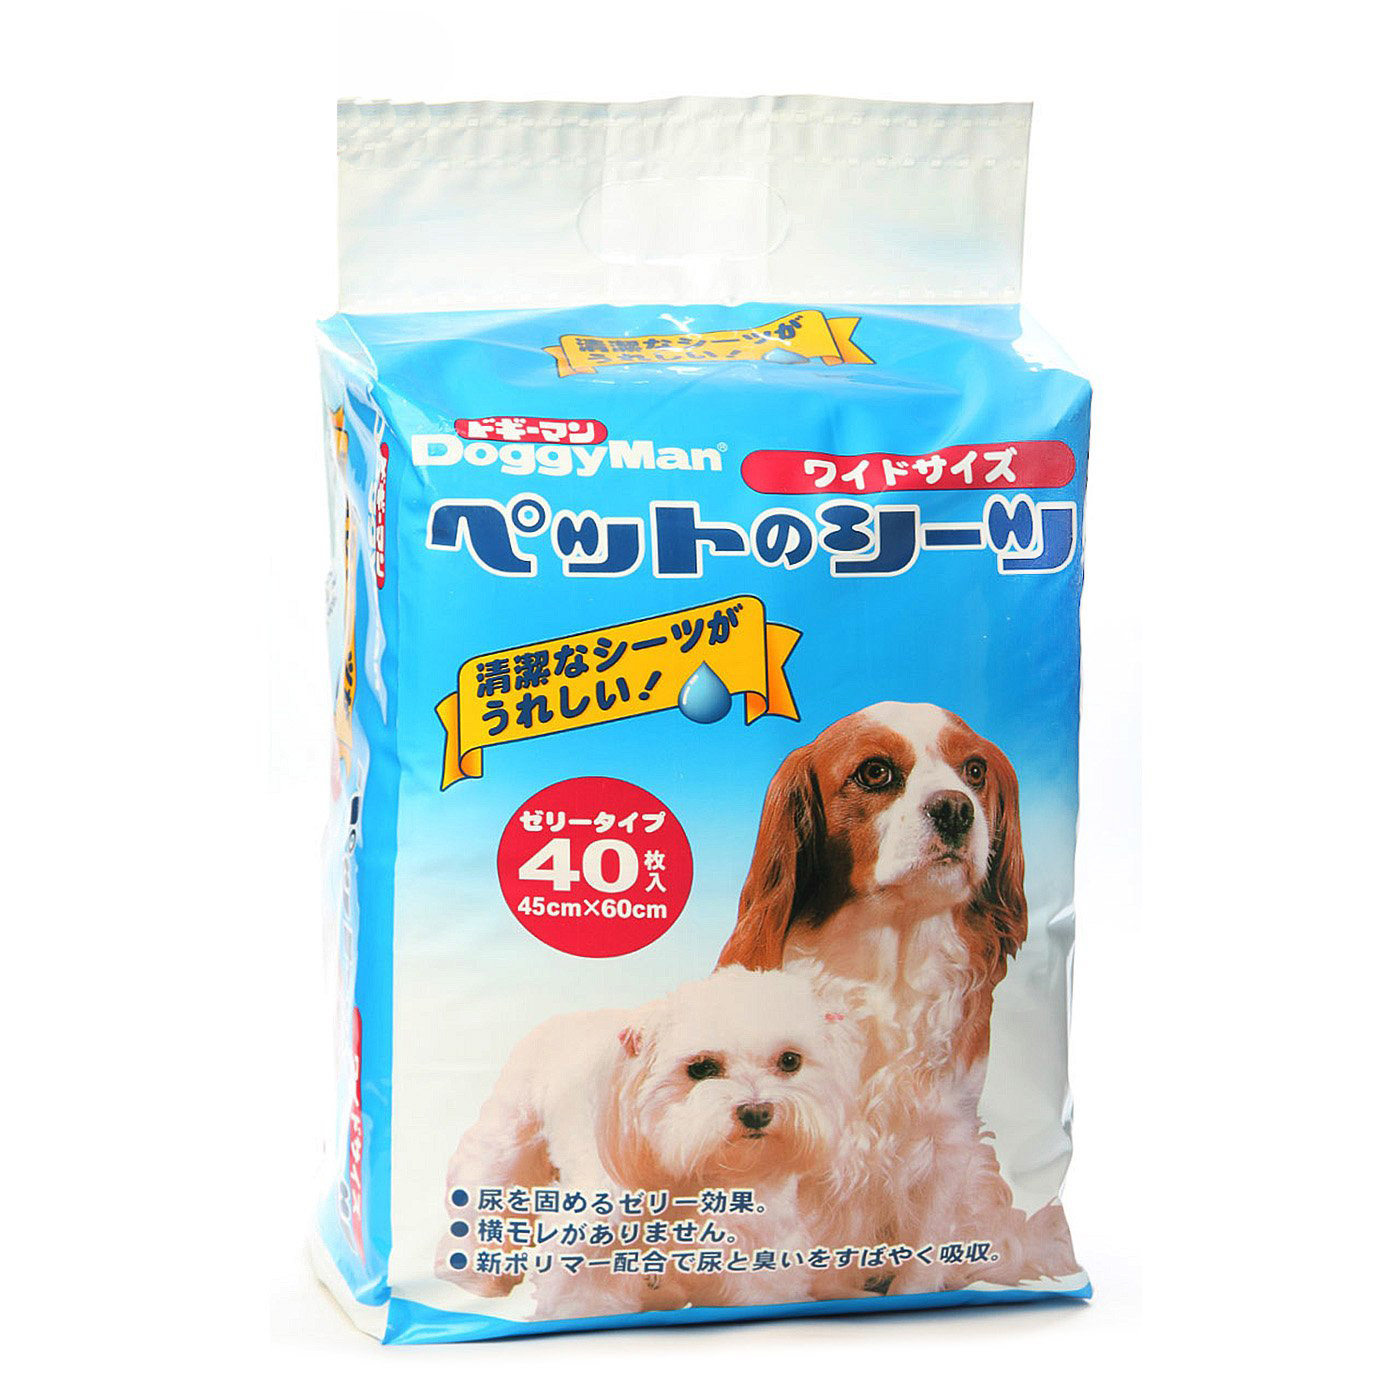 Cell diffuse pet diapers s/m number of dogs and cats dogs and cats diaper changing mat toilet diapers many provinces shipping